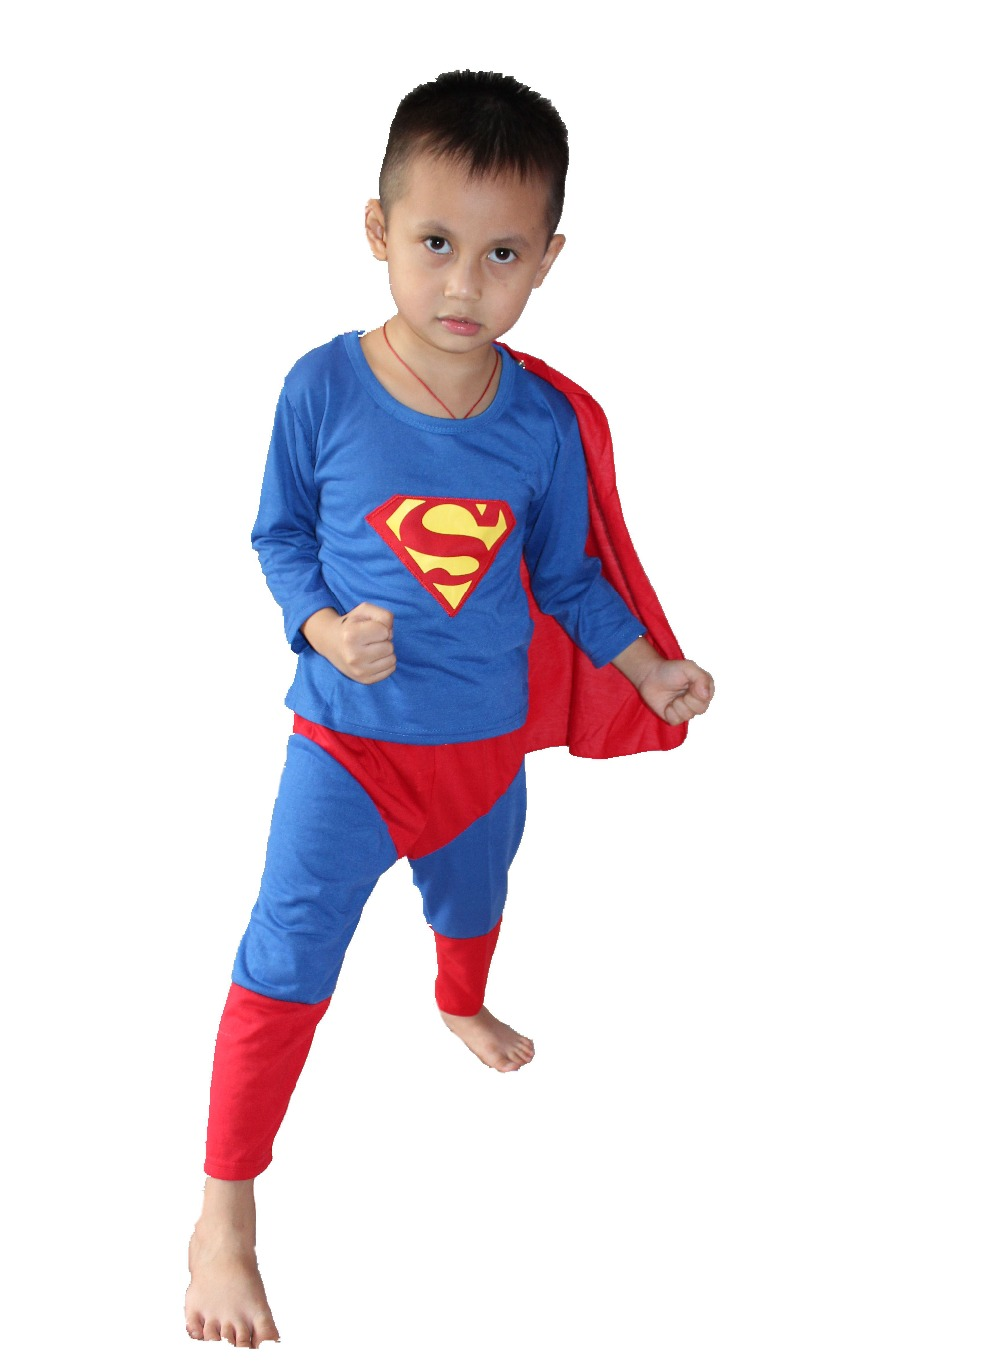 Detailhandel - Halloween Festedragt Hallowmas 3 - 7 Års Kid Superman Spil tøj / Boy Superman Costume Cosplay T-shirt